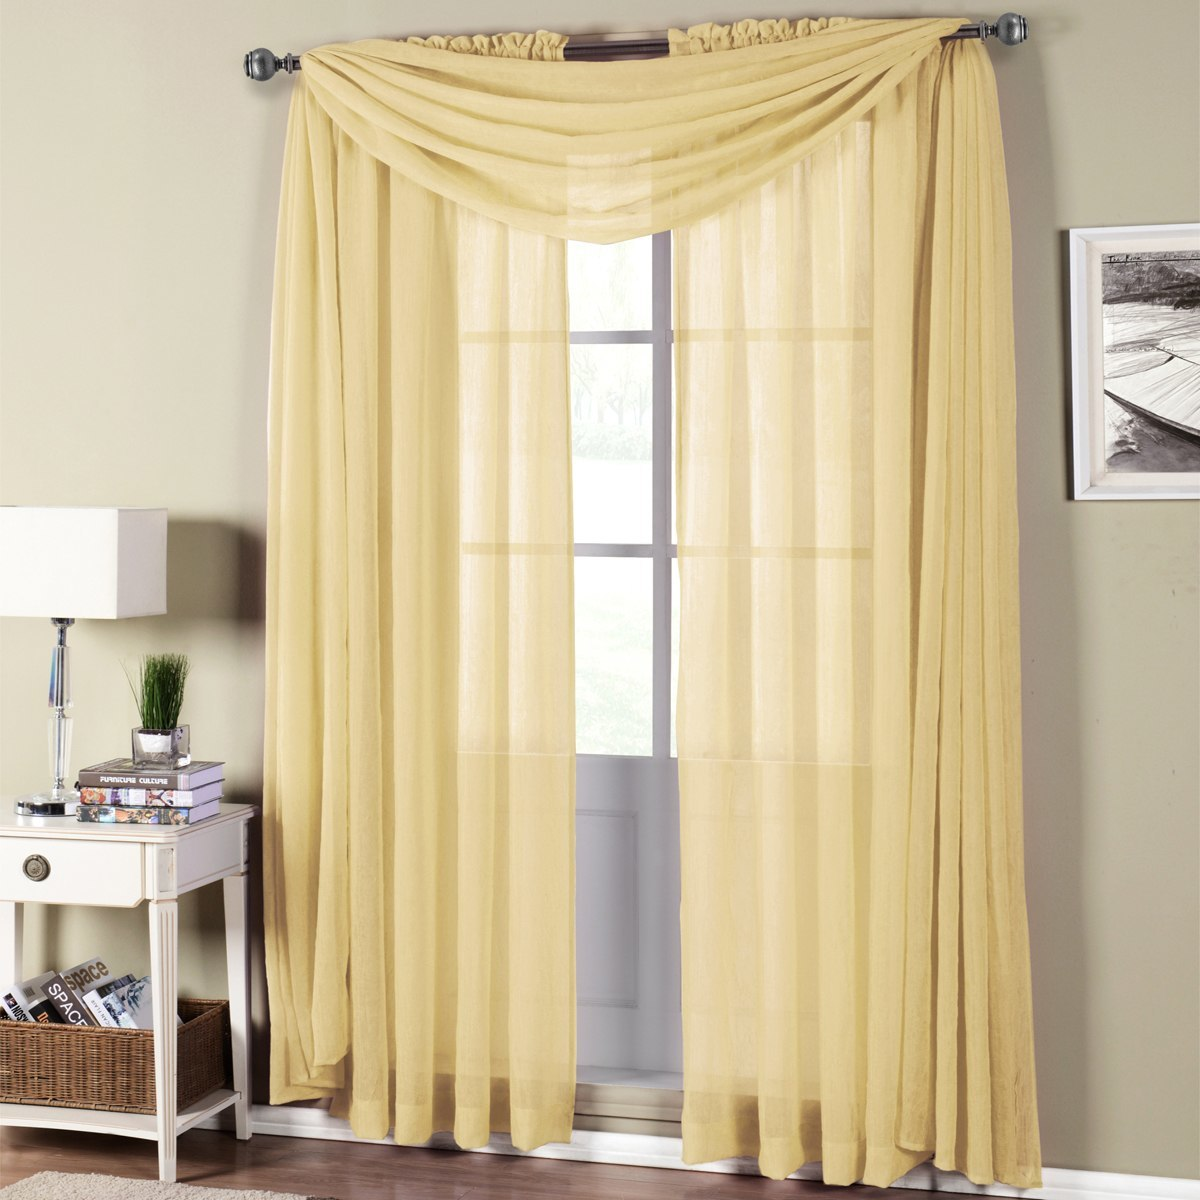 Abri Rod Pocket Crushed Sheer Curtain Panels ( Panels & Scarfs Sold Individually )- 50x96 - White